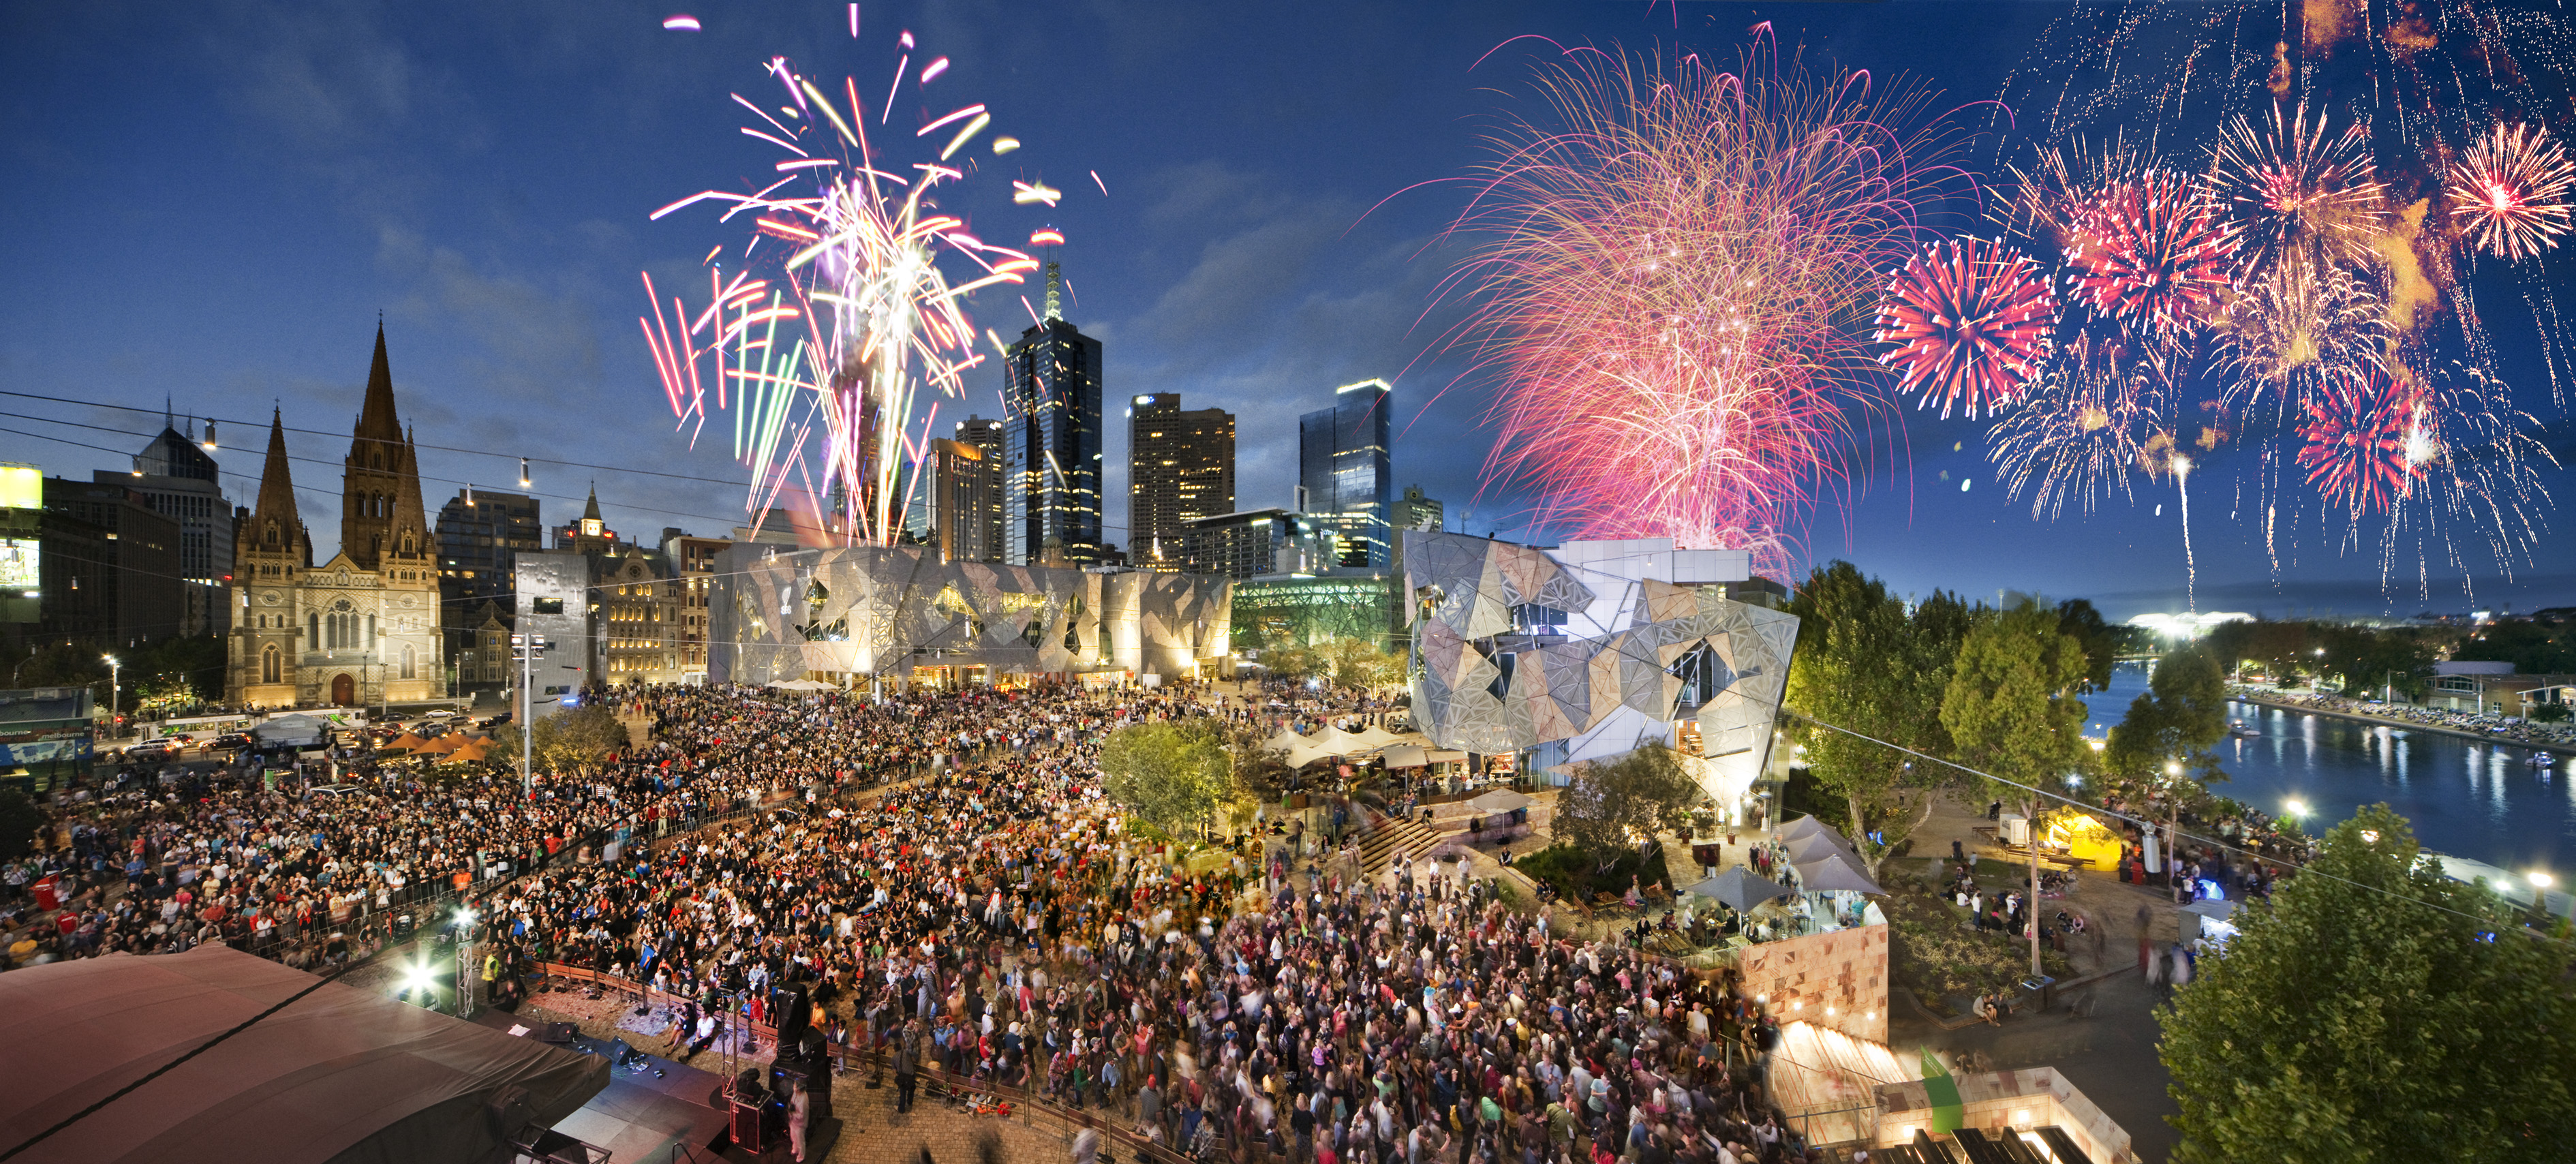 Melbourne's New Years fireworks crowd